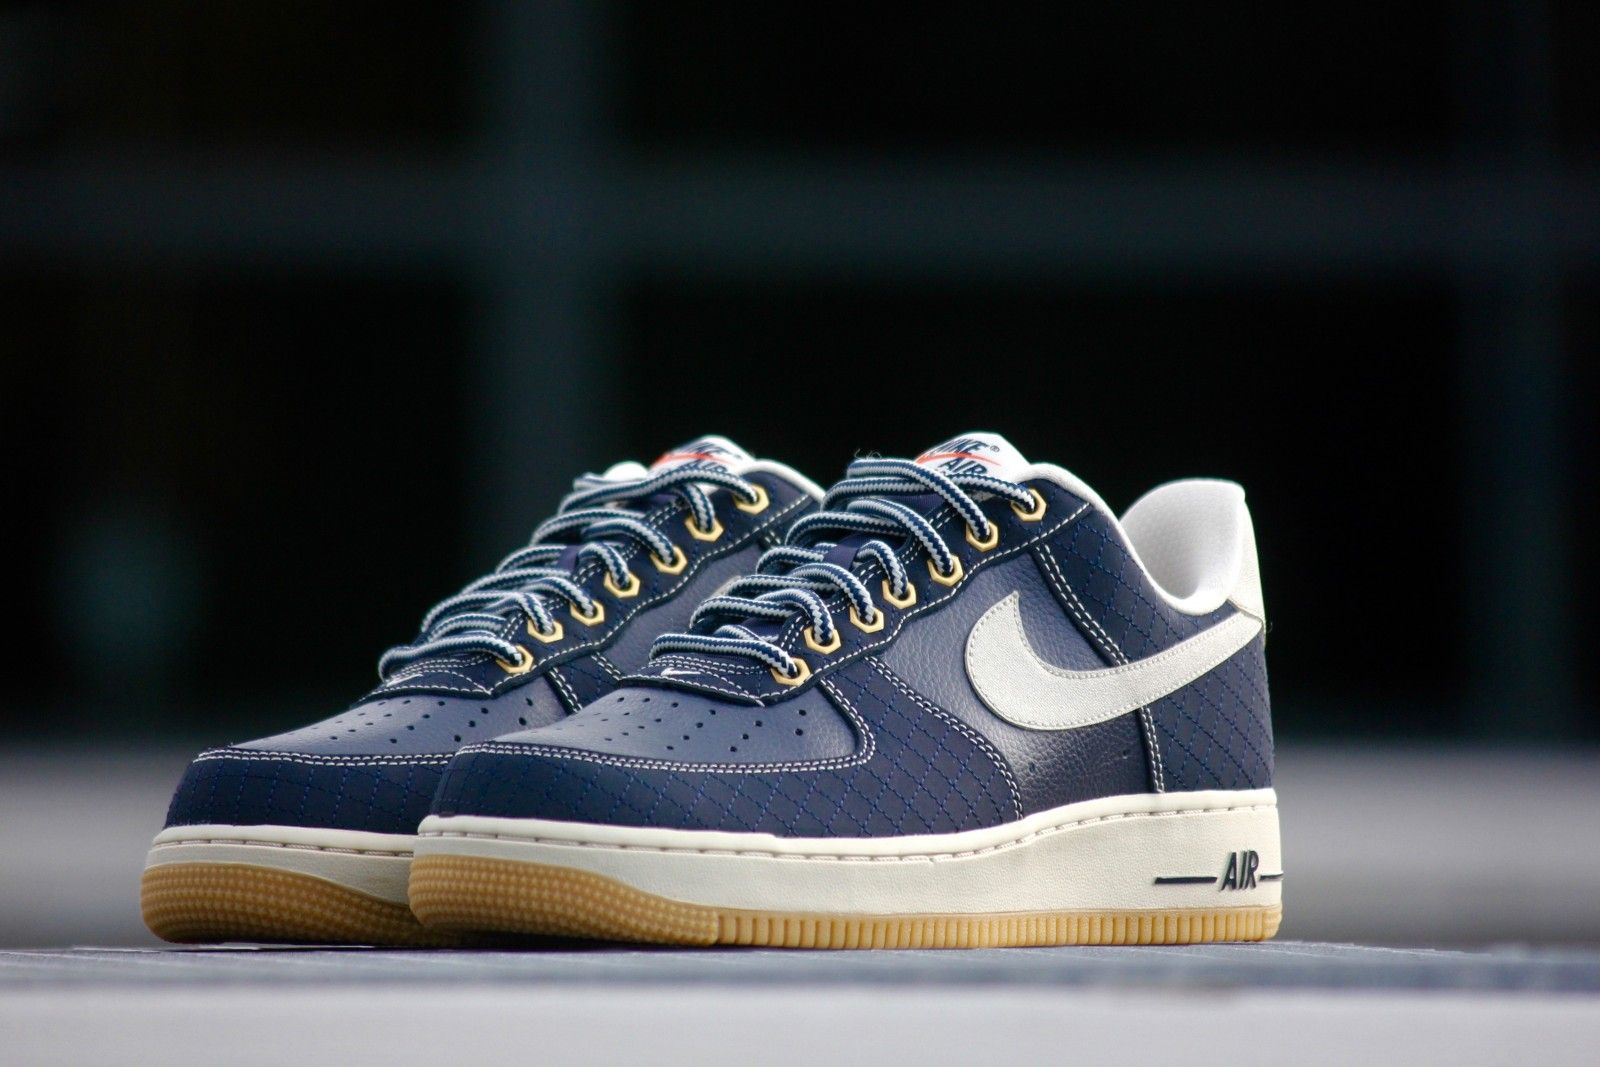 big sale 8123a 4f234 Nike Air Force 1 Obsidian Light Bone Gum - 488298-434